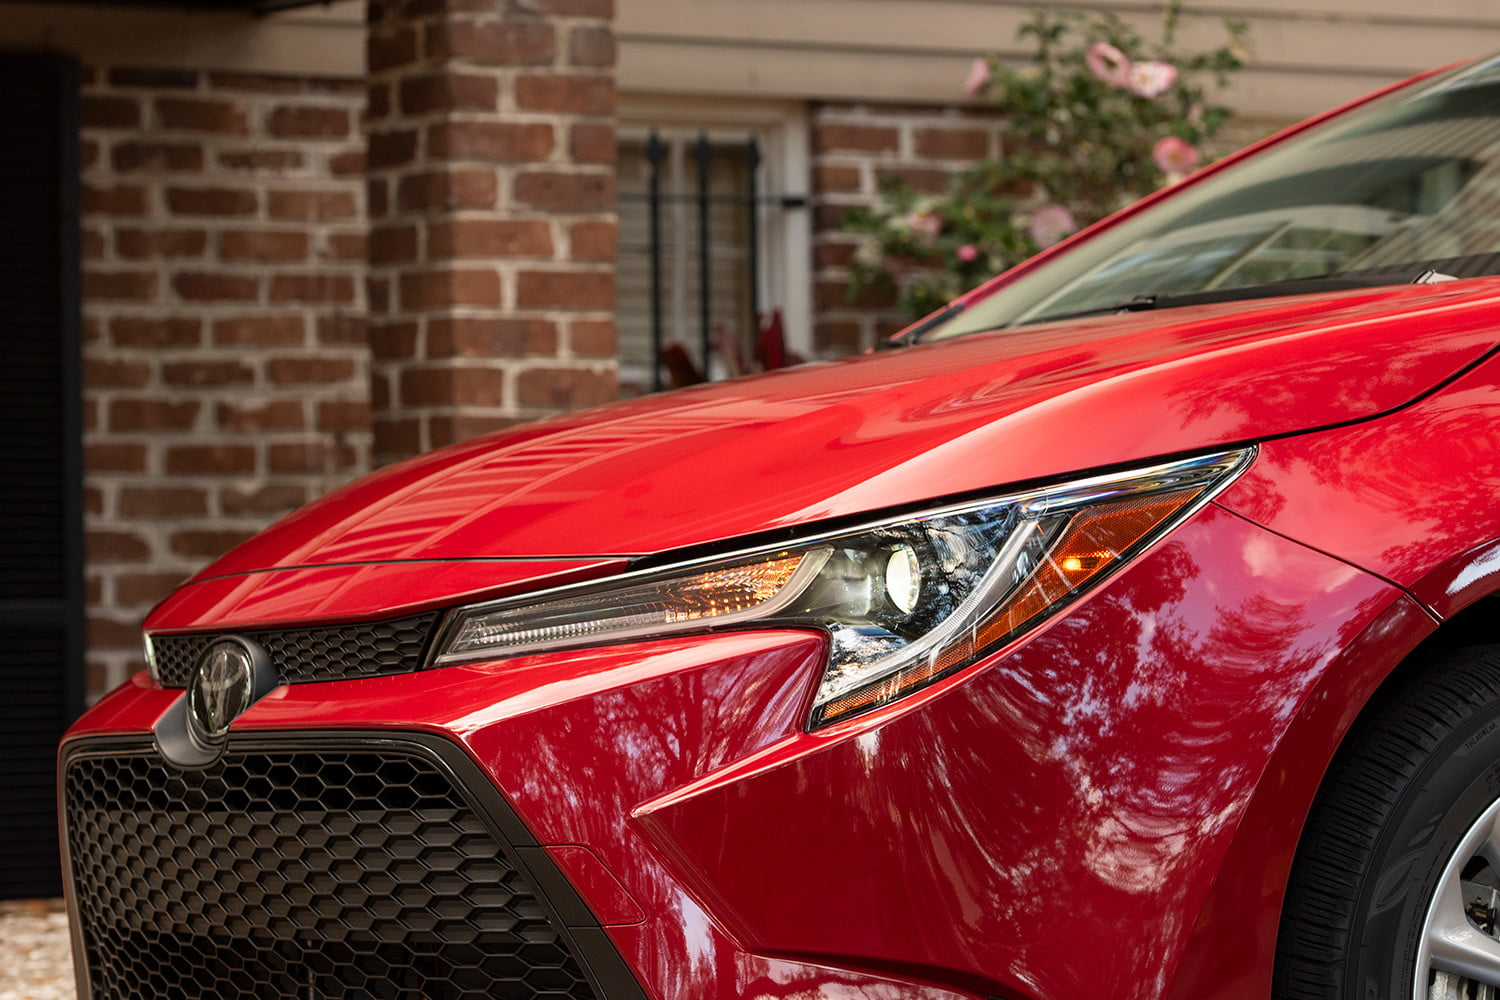 Toyota Corolla Le >> 2020 Toyota Corolla First Drive Review | Digital Trends